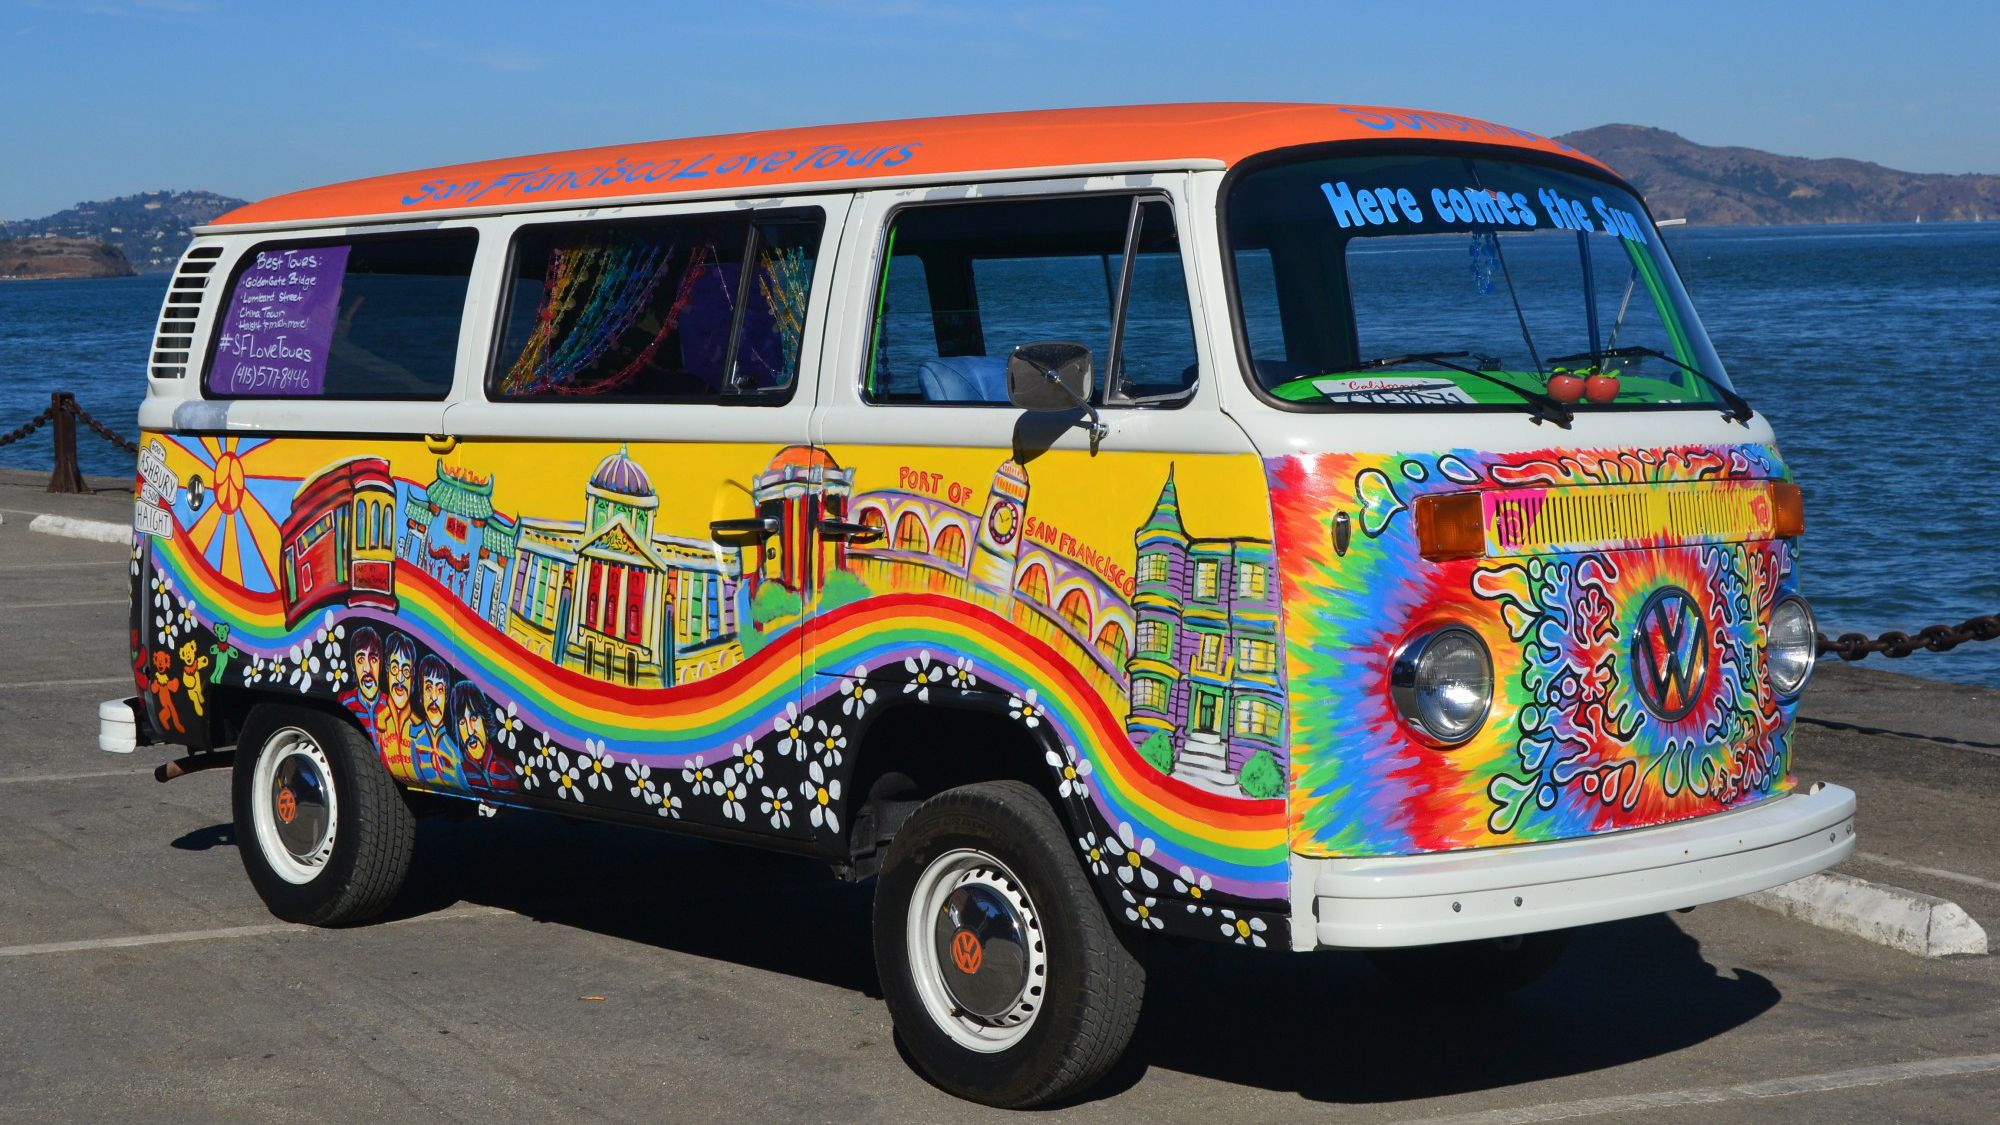 Colorfully painted tour van in San Francisco